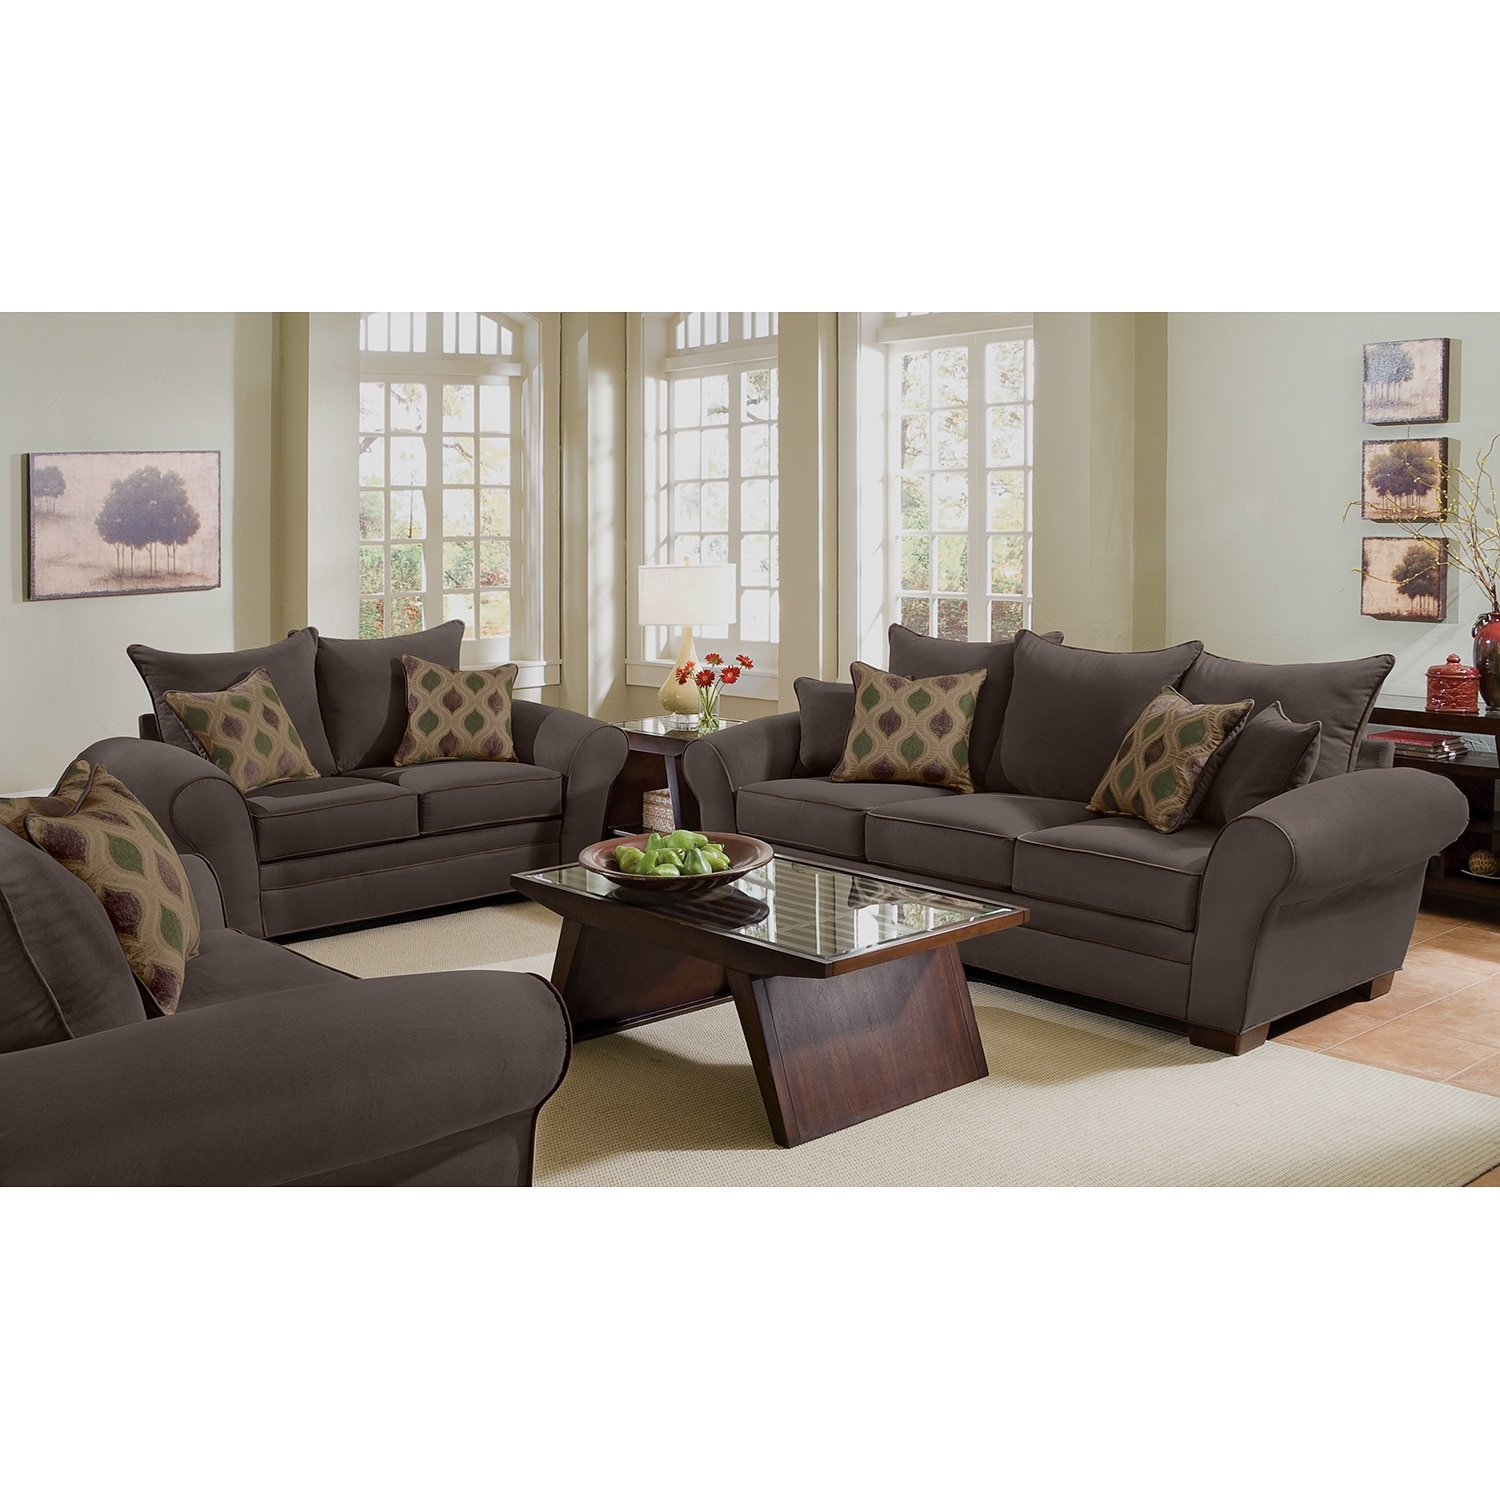 Rendezvous Sofa and Loveseat Set - Chocolate